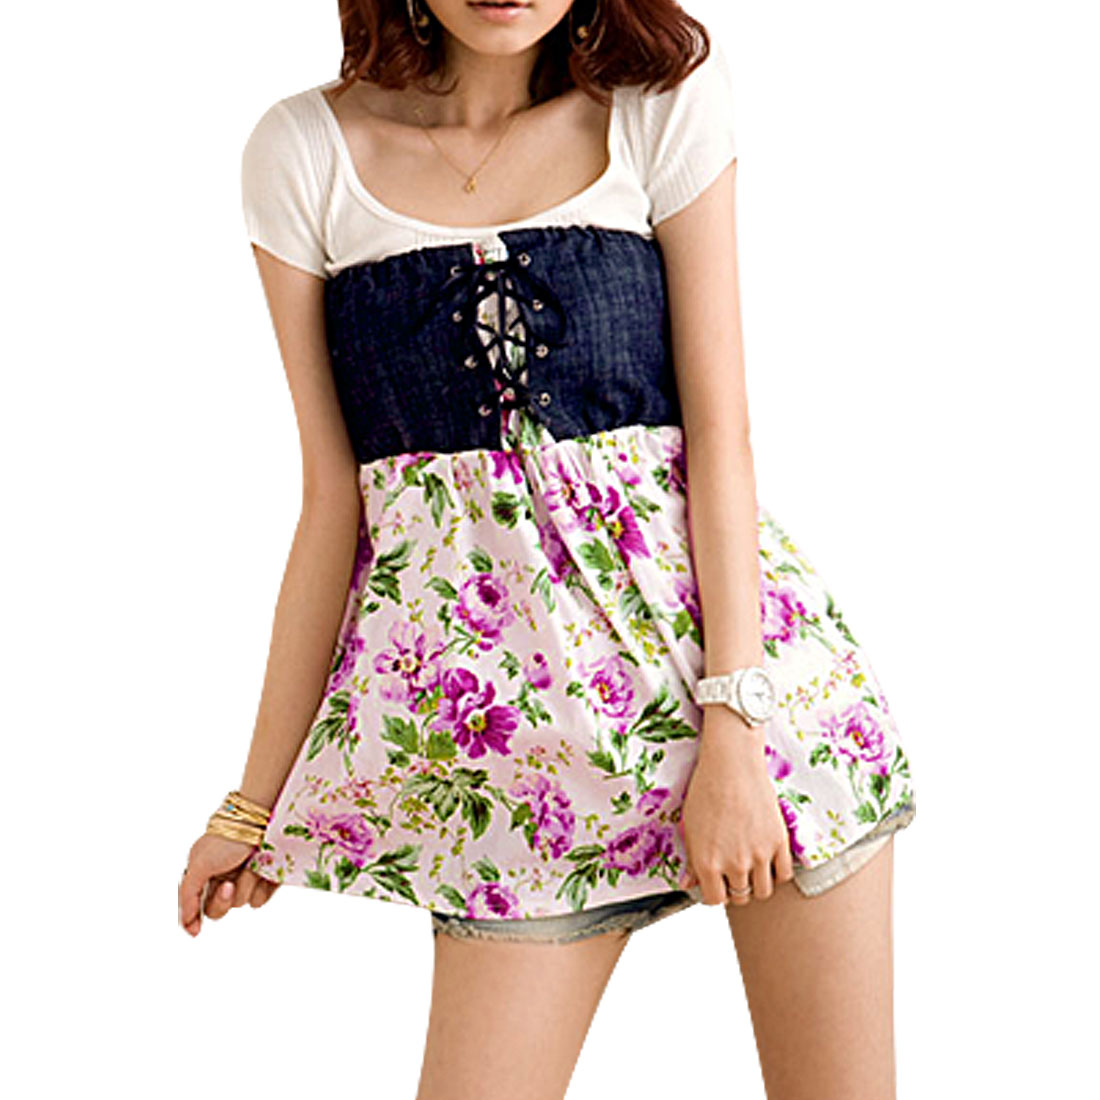 Ladies Ruffled Sleeveless Flower Cross Strap Front Tube Top XS